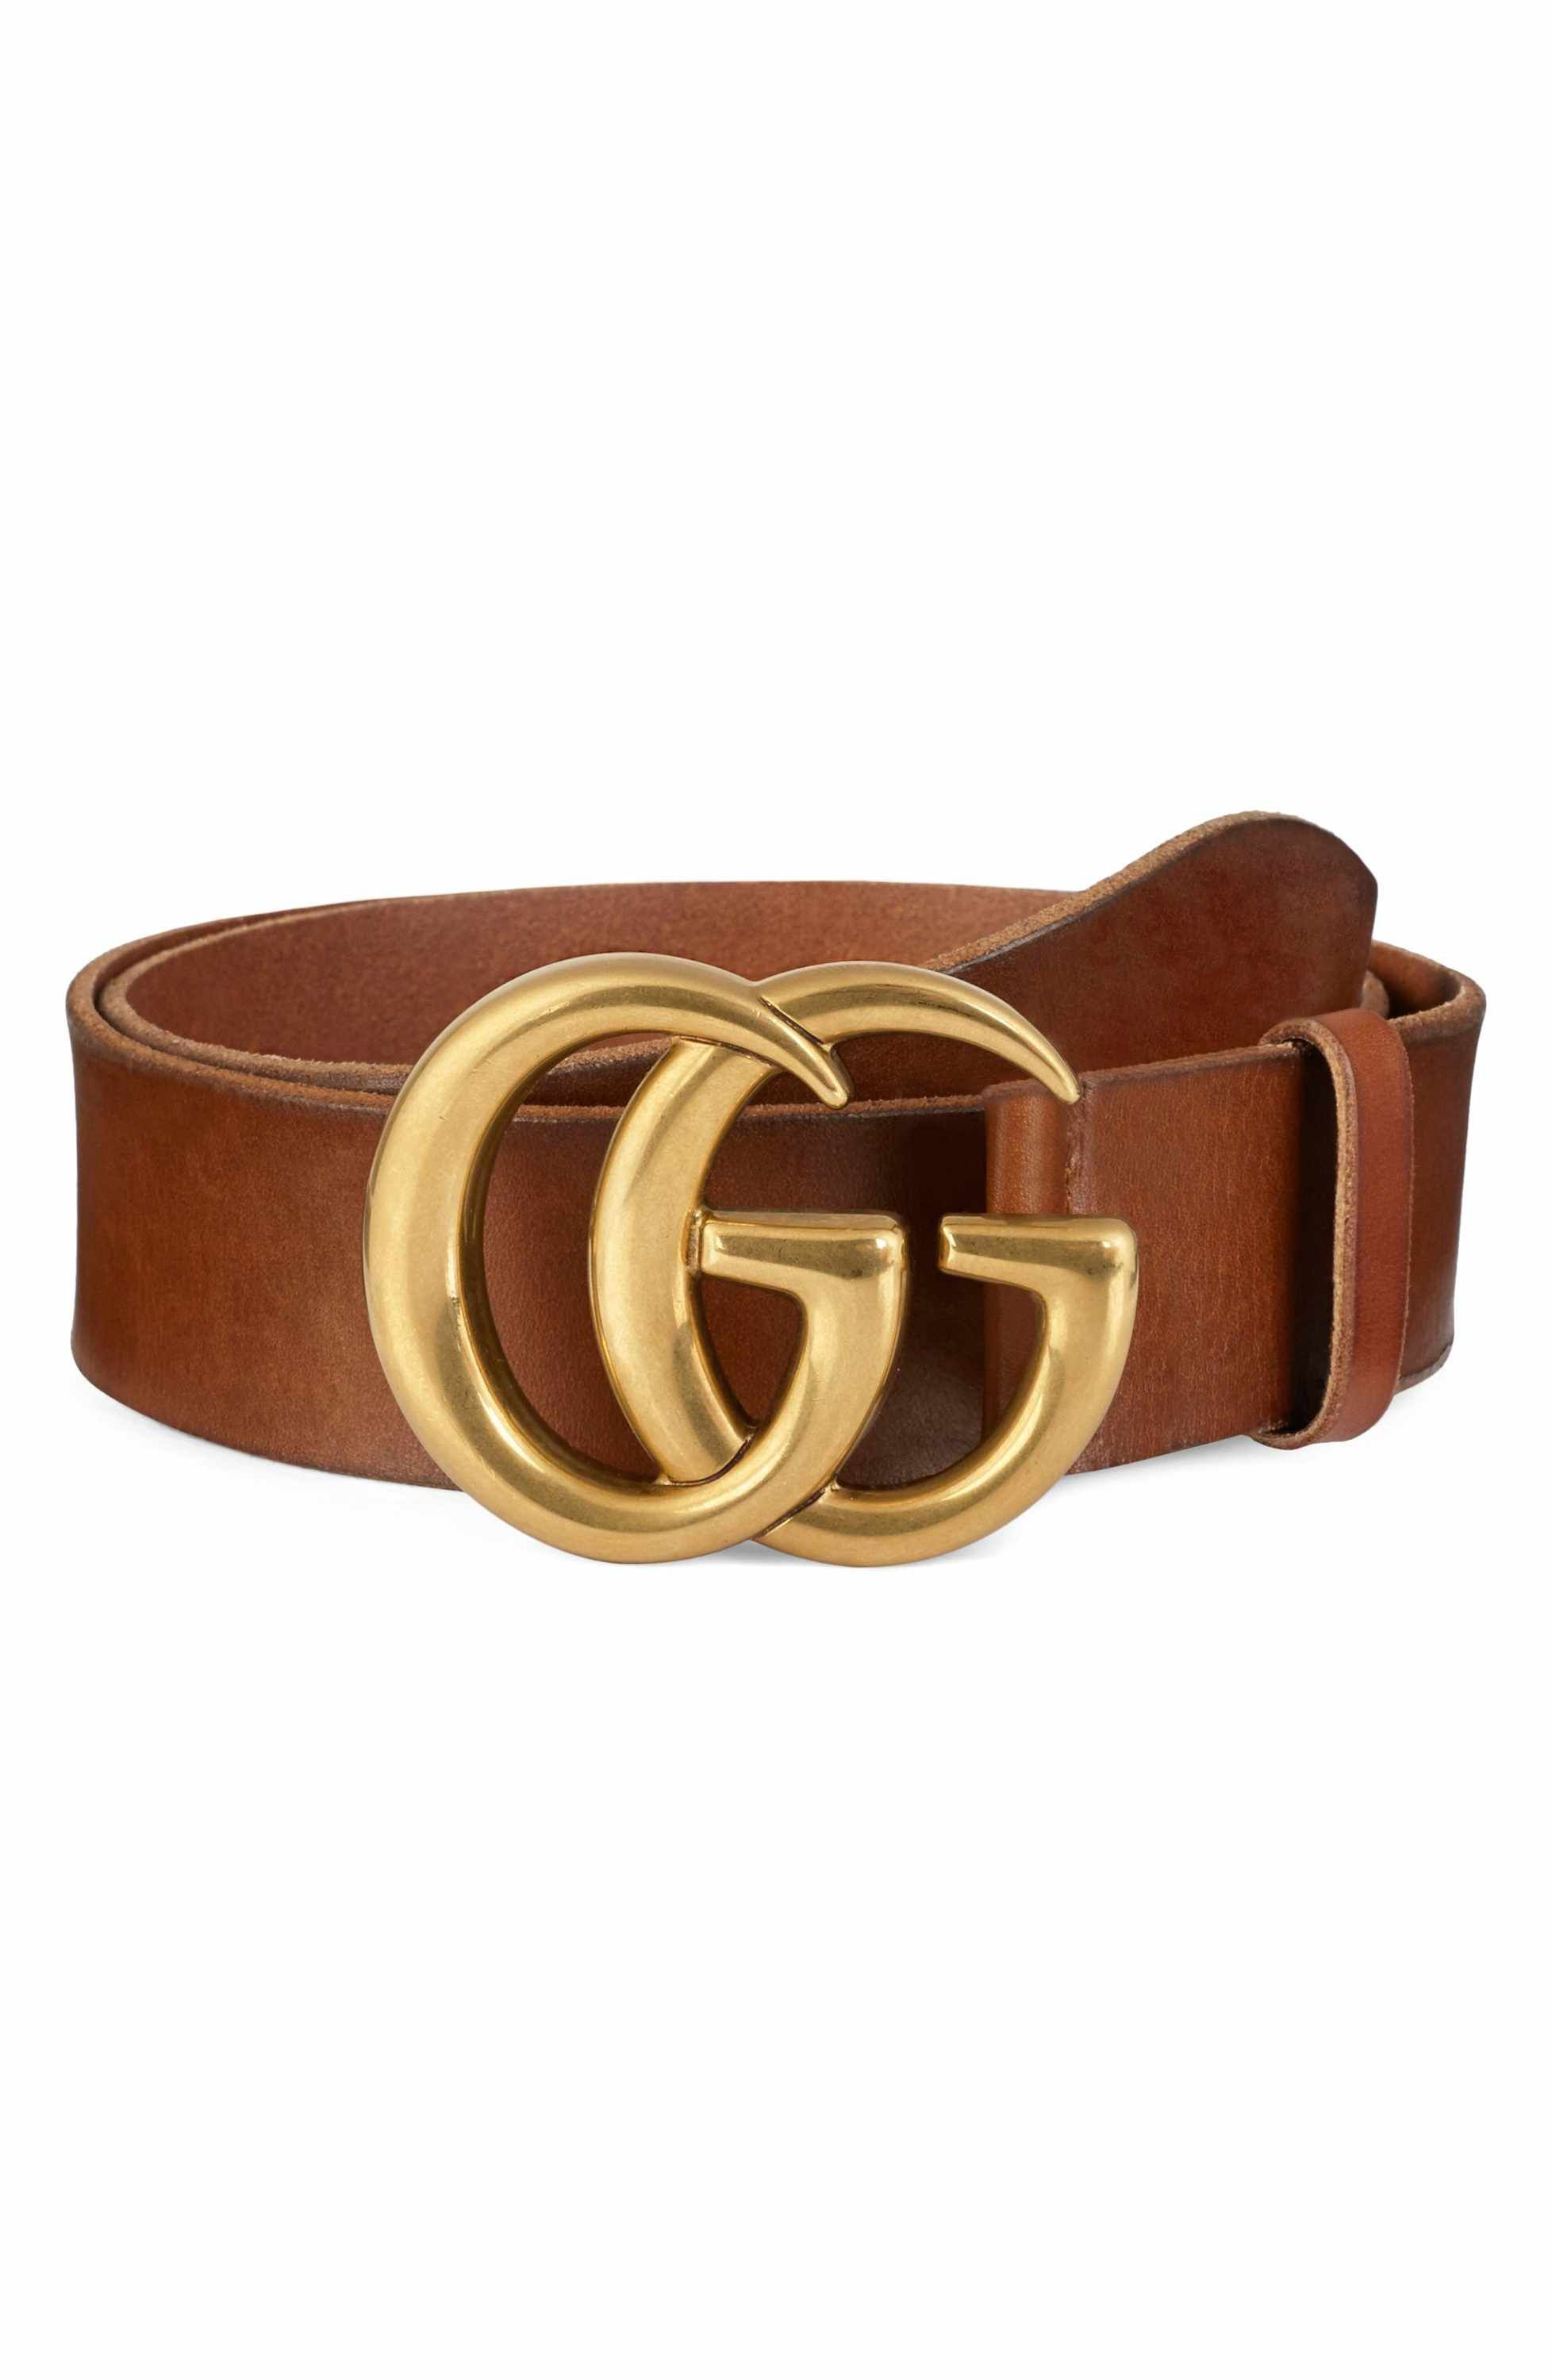 1f5f8bcd8 Main Image - Gucci Running Gold Leather Belt | Lusting After ...